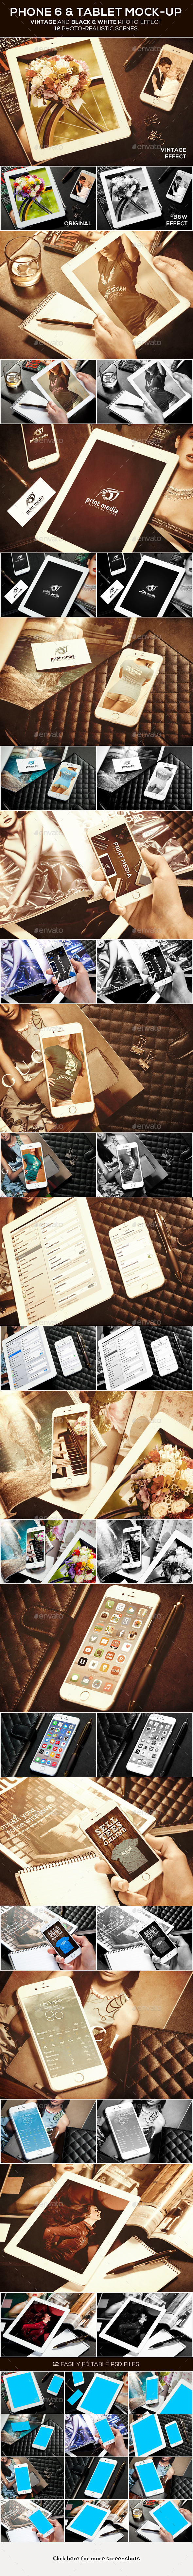 GraphicRiver Phone 6 and Tablet Mock-up 9705962